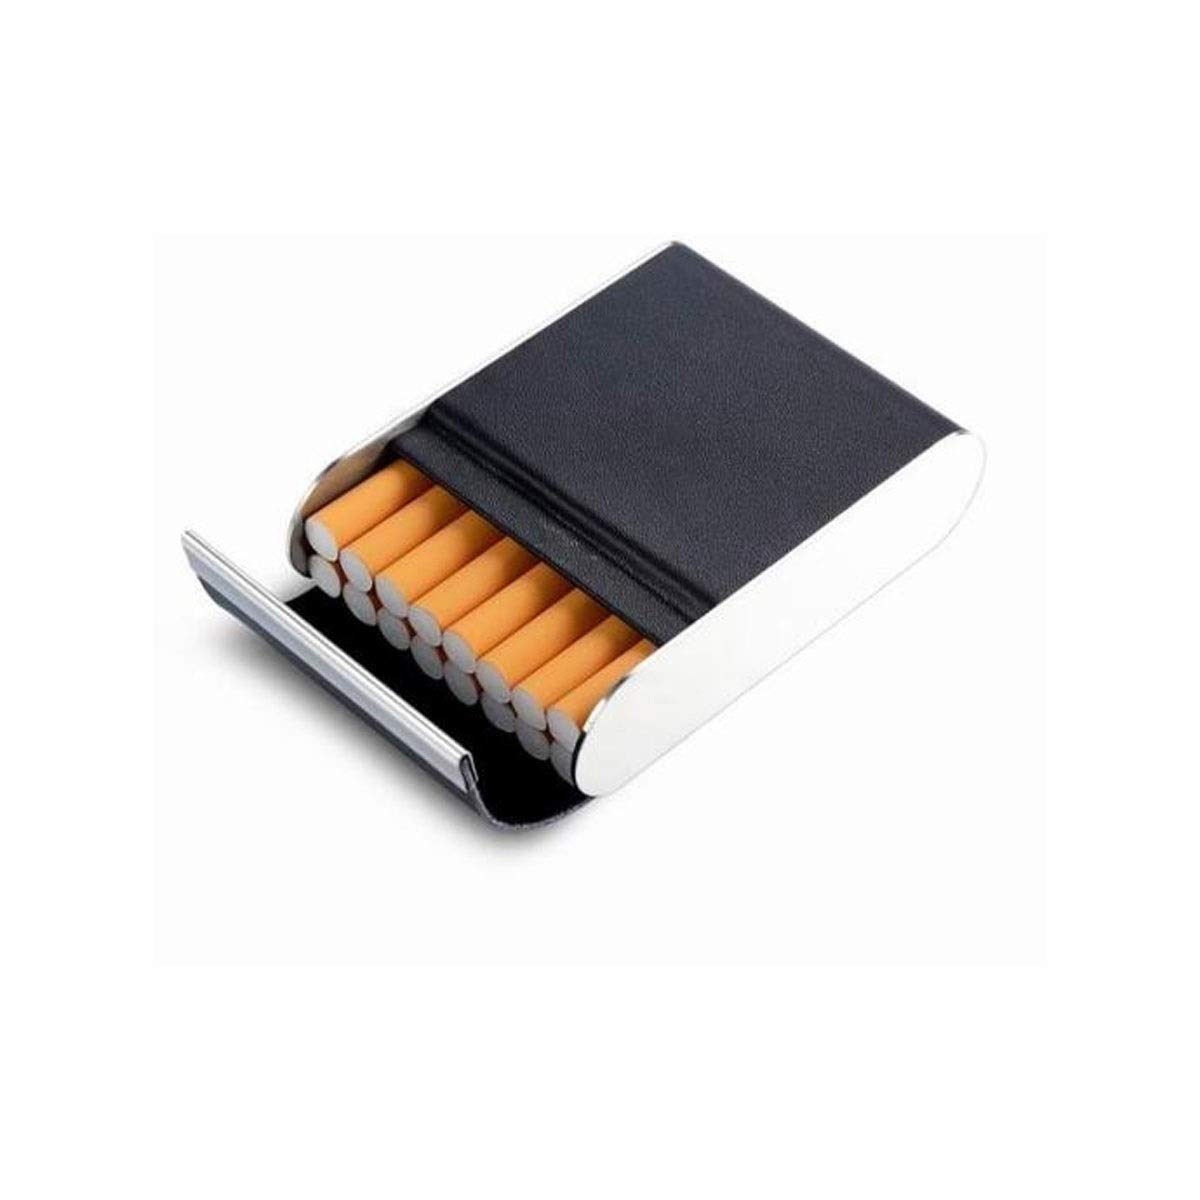 ZHONGYUE Leather Cigarette Case, Creative Cigarette Case, Metal Stainless Steel Cigarette Case, Unique Design, Sturdy and Lightweight. (Color : Black)